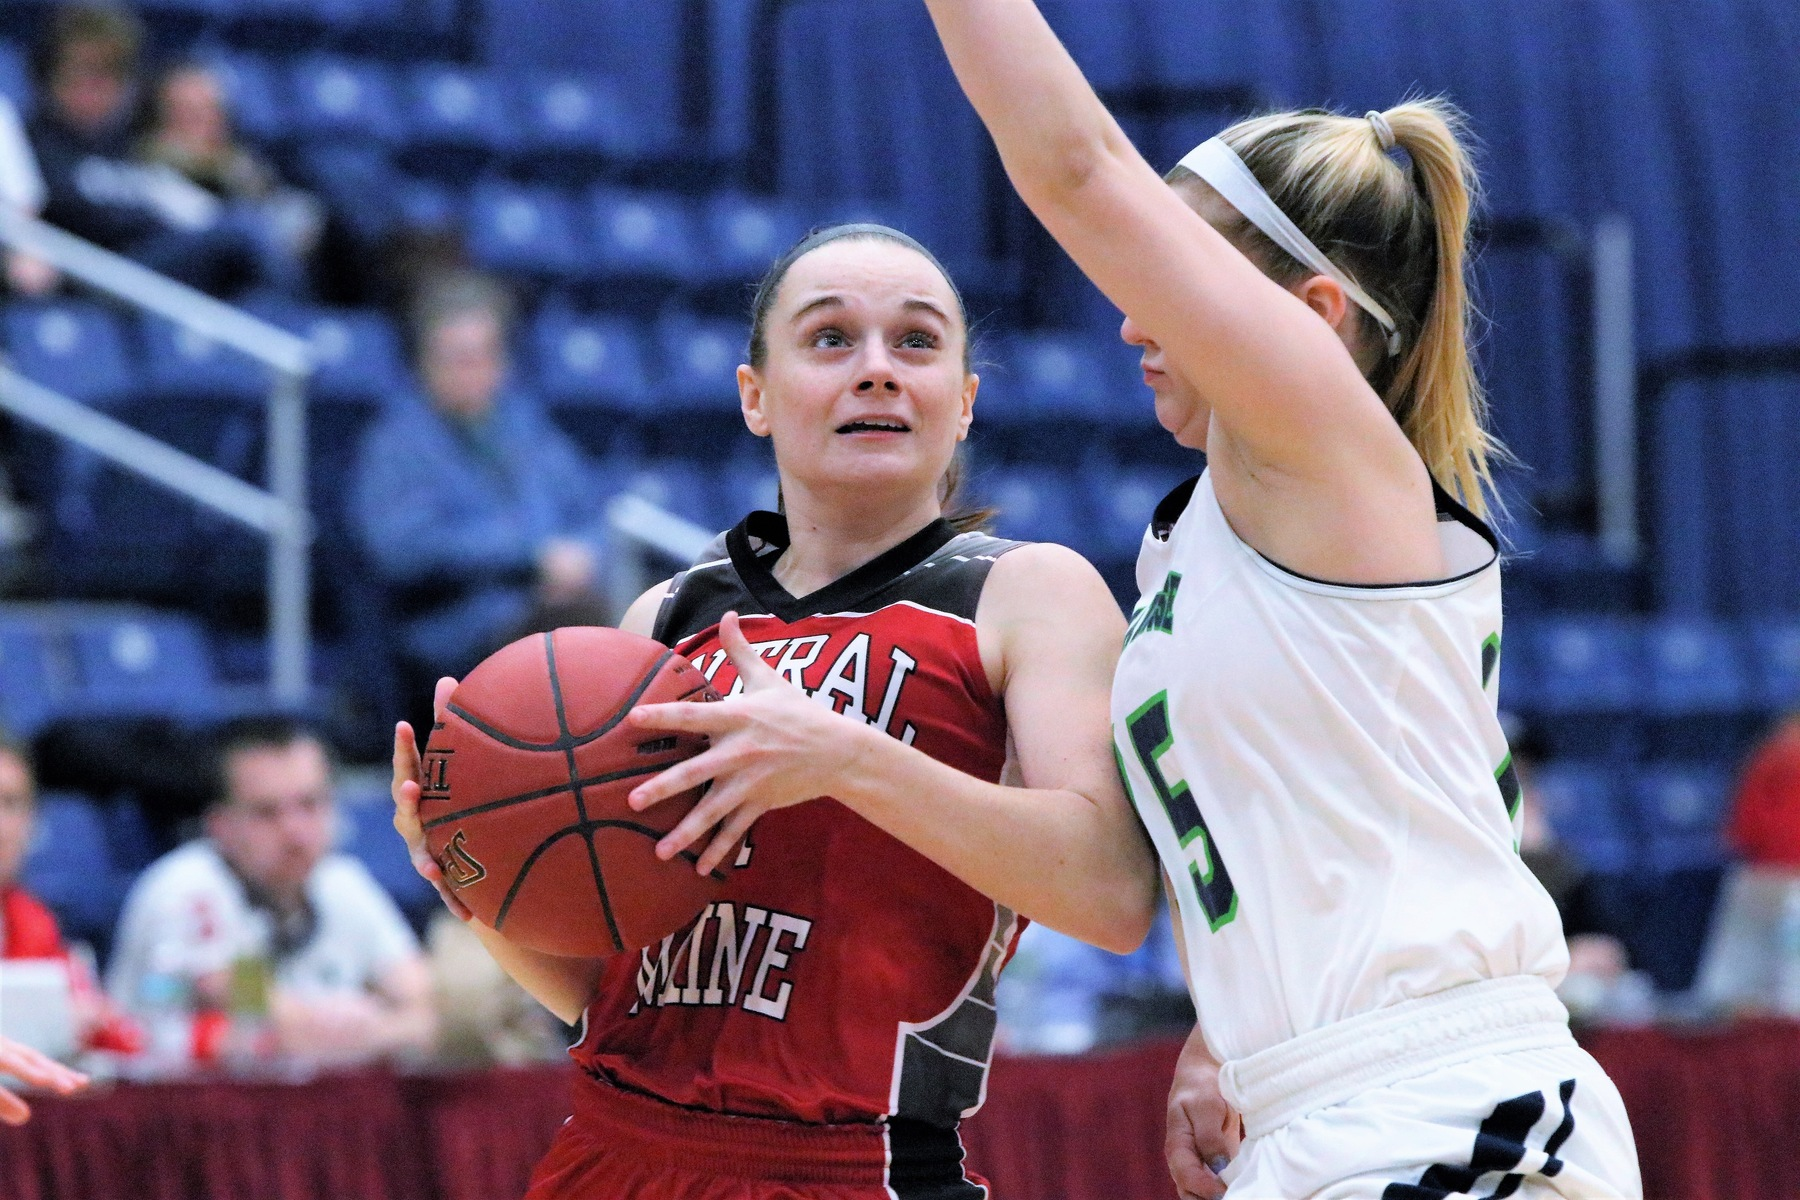 Down 17, Lady Mustangs storm back, shock UMA